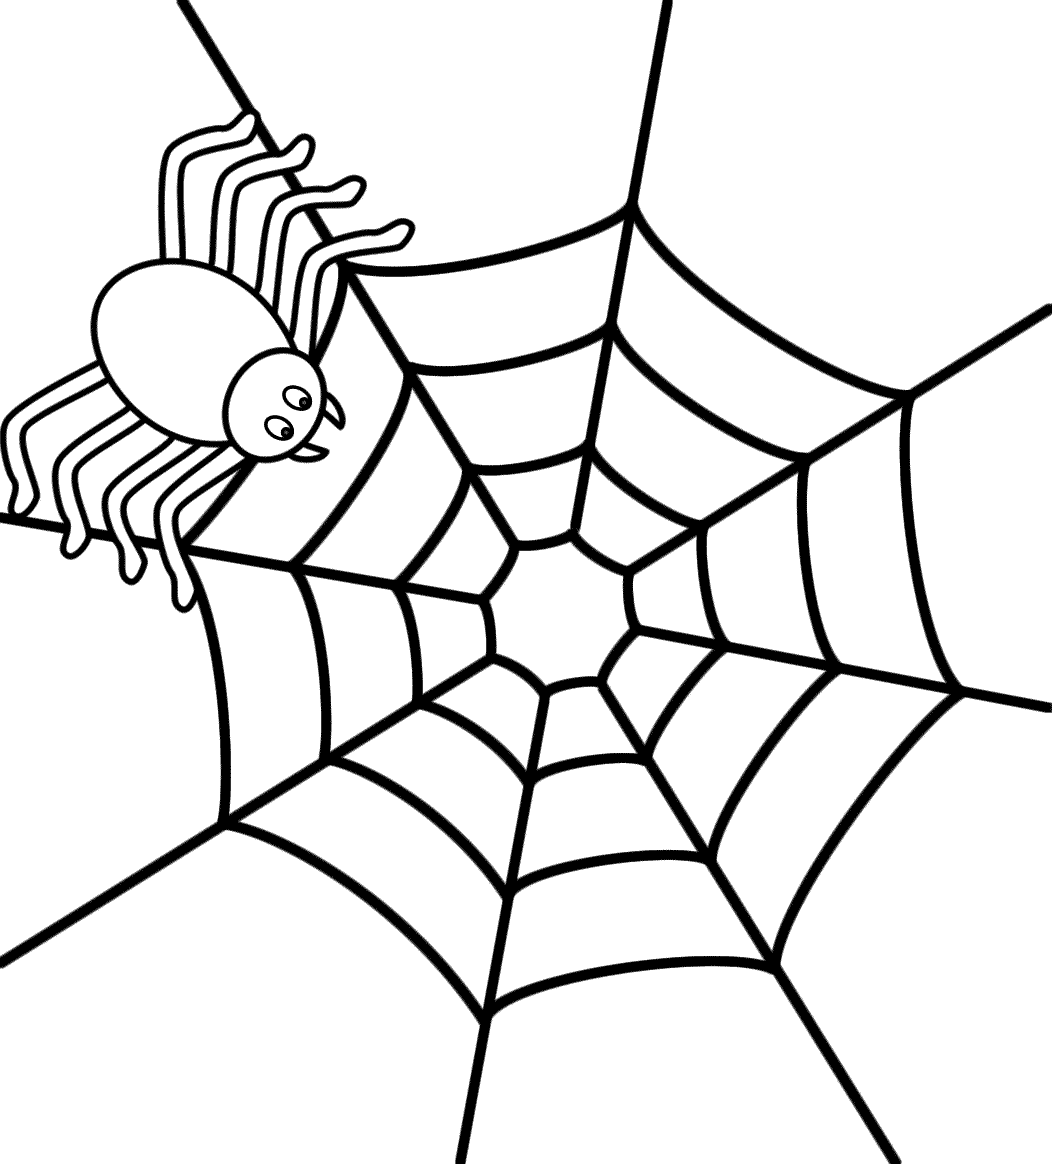 Spider On A Web - Coloring Page (Insects) - Coloring Home